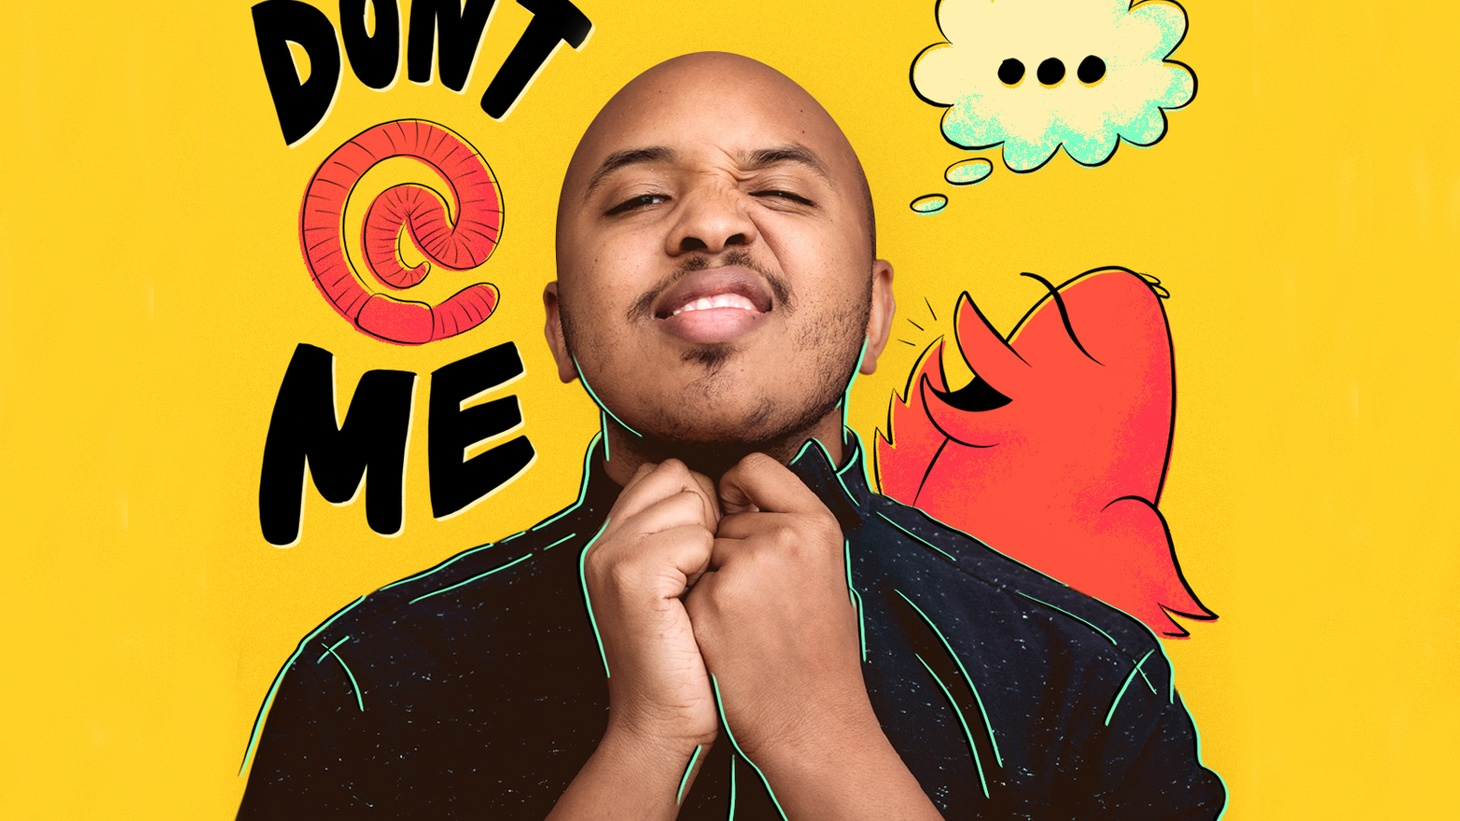 KCRW's Bob Carlson and Dear White People director Justin Simien discuss KCRW's newest show – Don't @ Me – hosted by Justin.